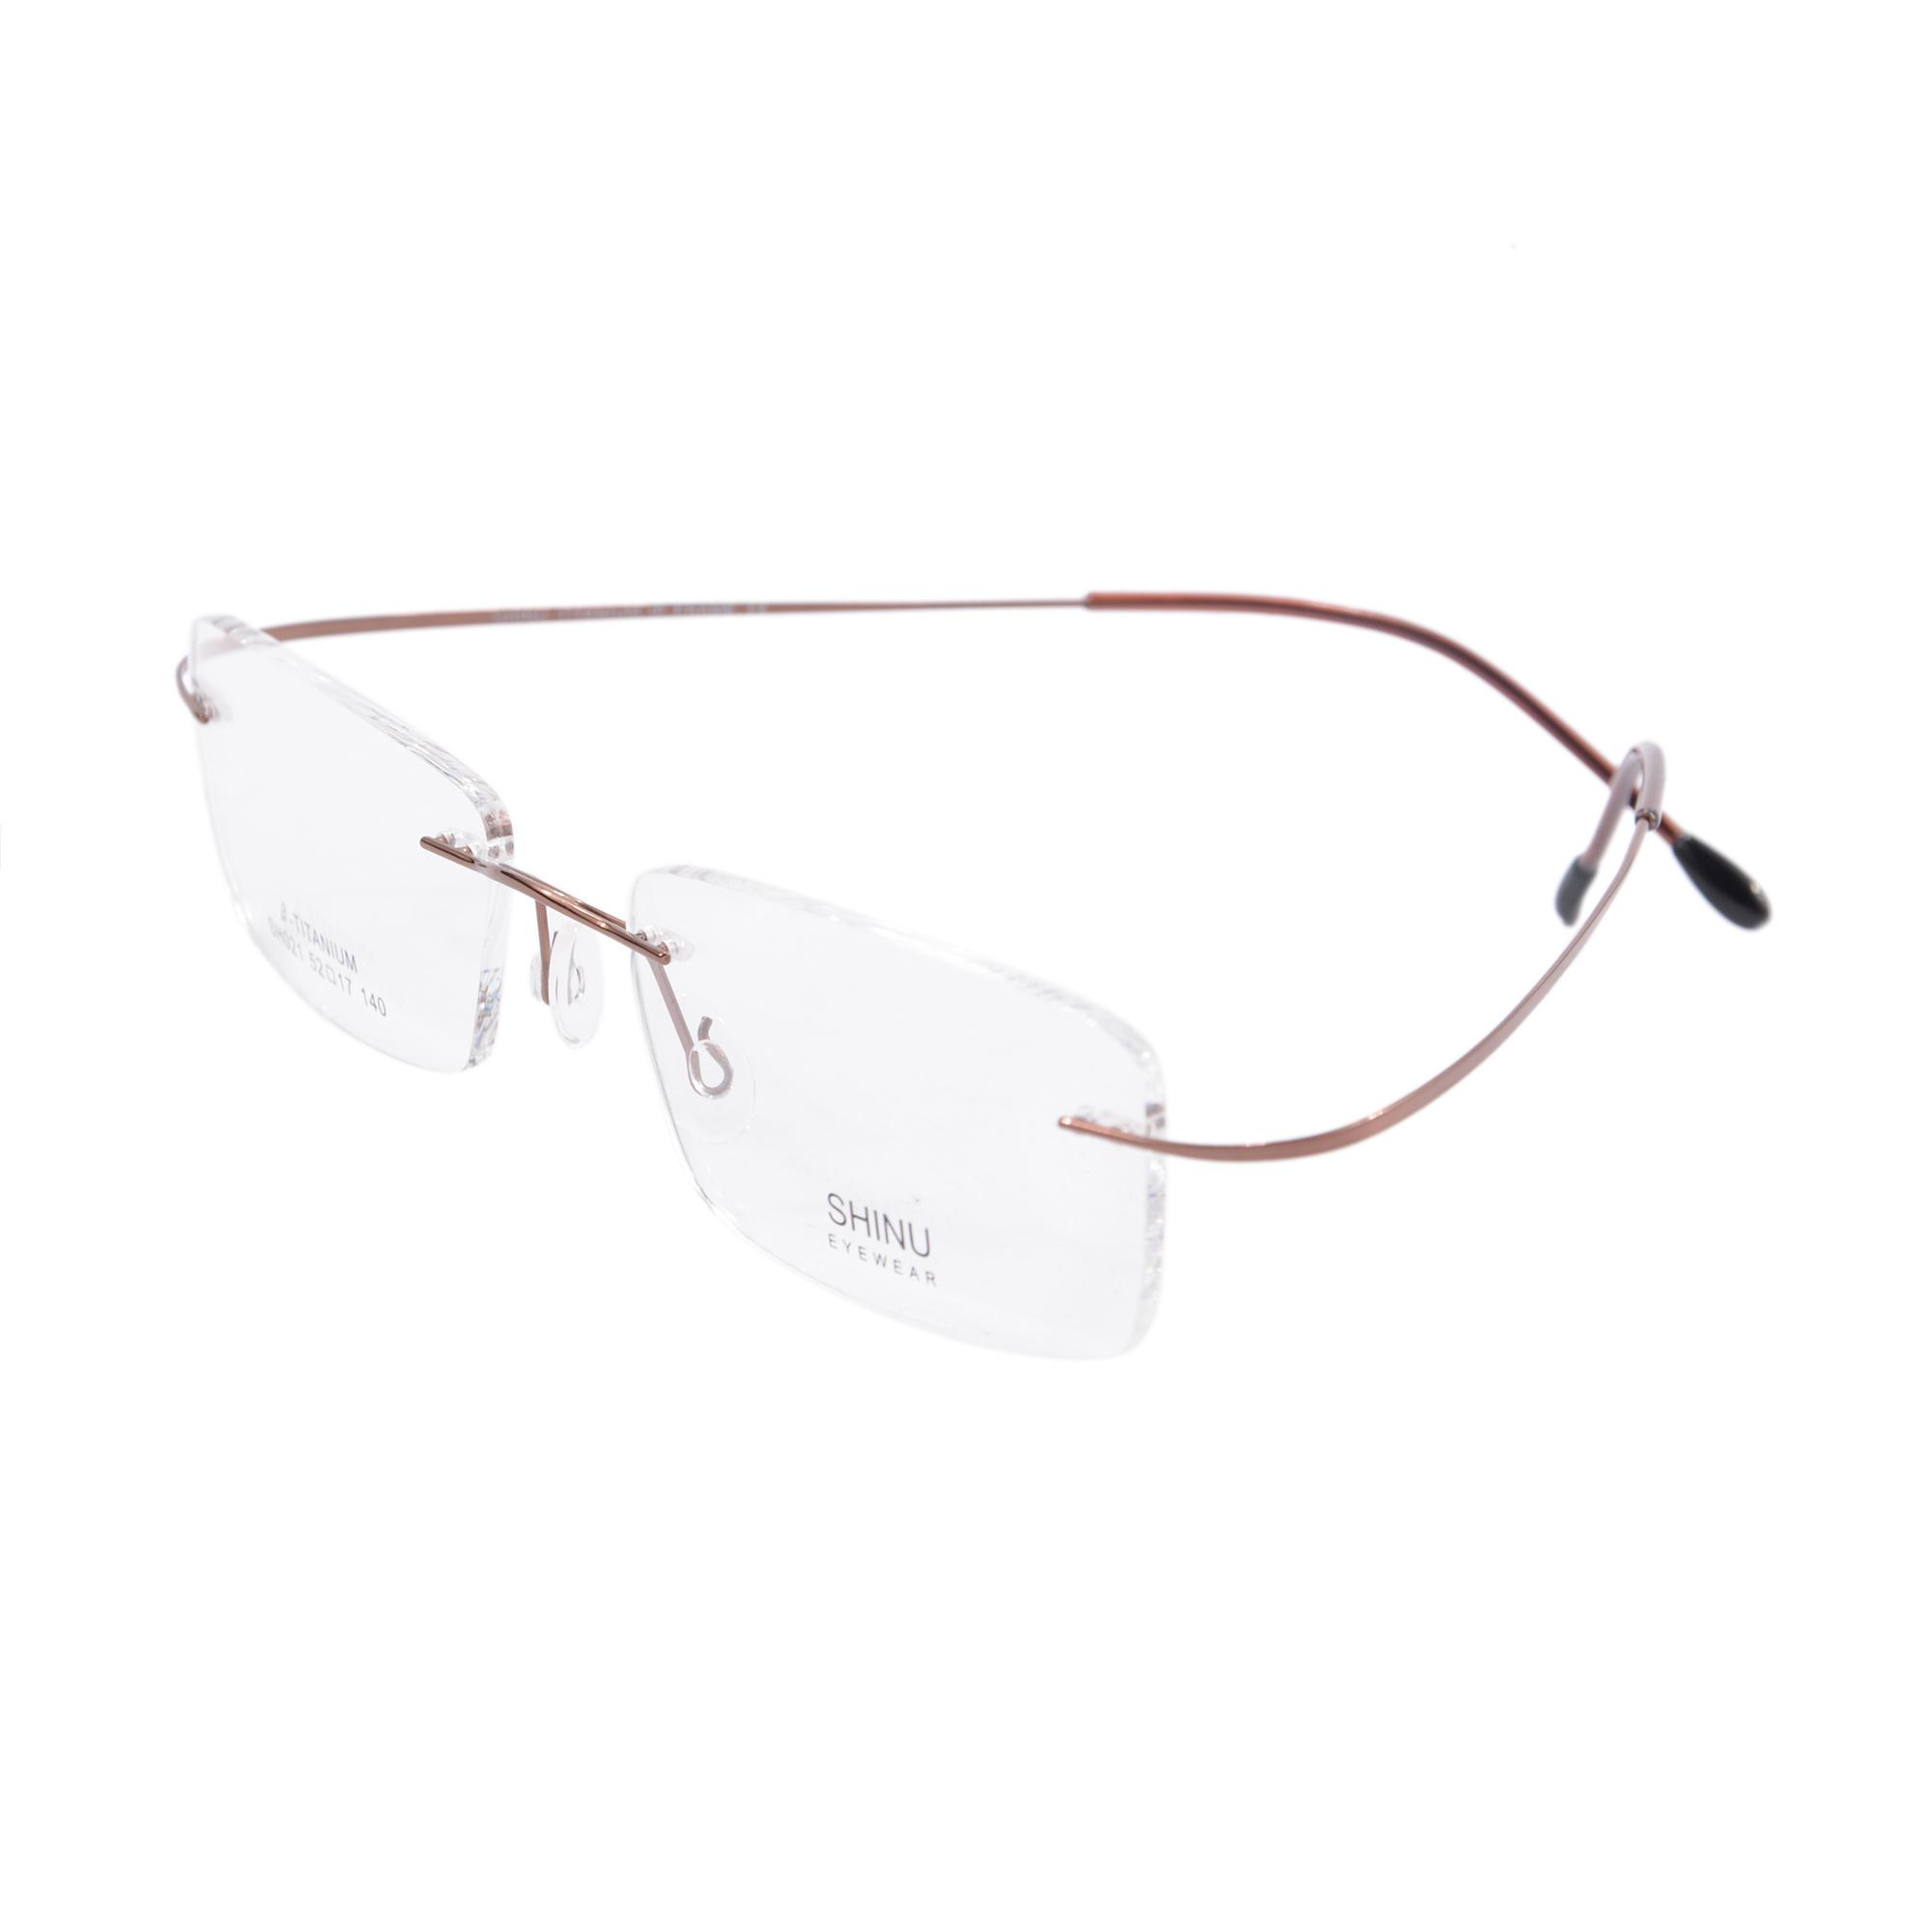 Shinu Titanium Rimless Glasses Frame Optical Prescription Eyeglasse ...